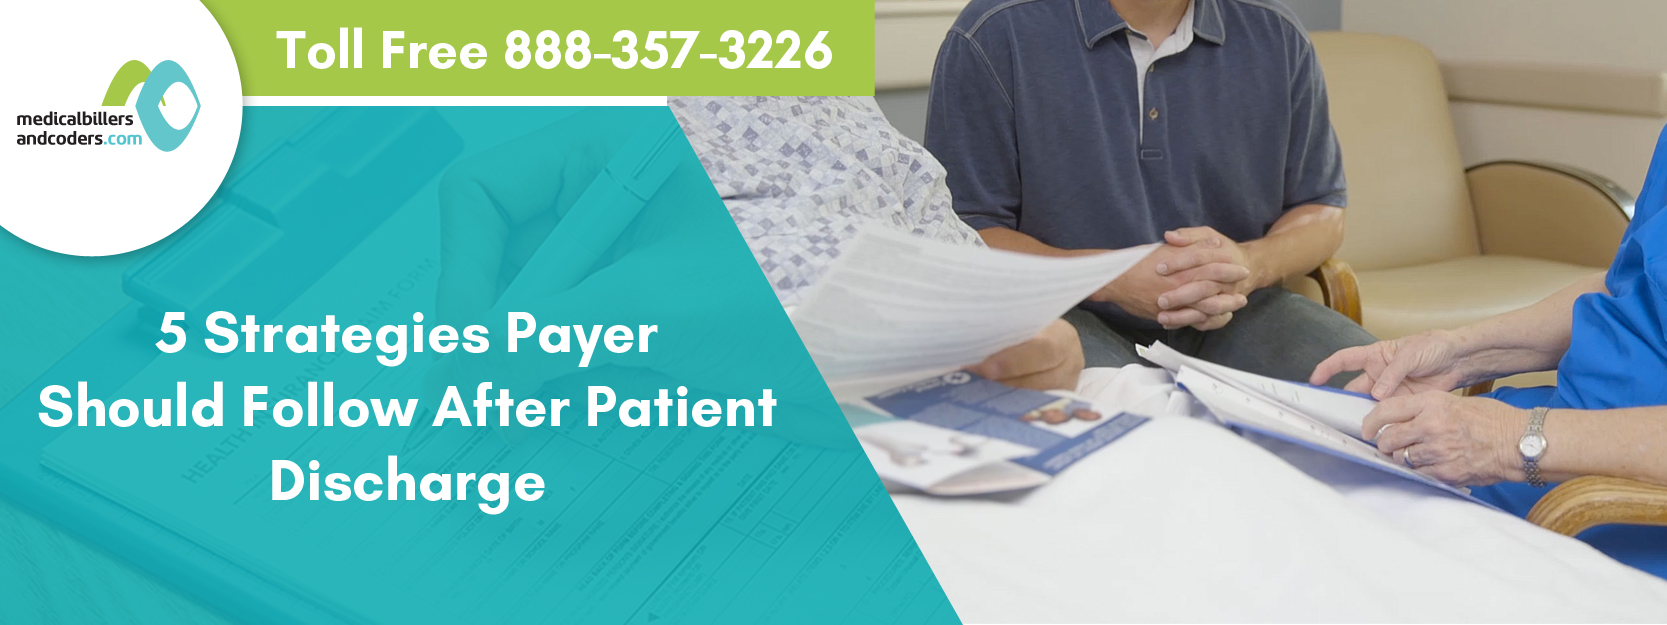 Strategies-payer-should-follow-after-patient-discharge.jpg